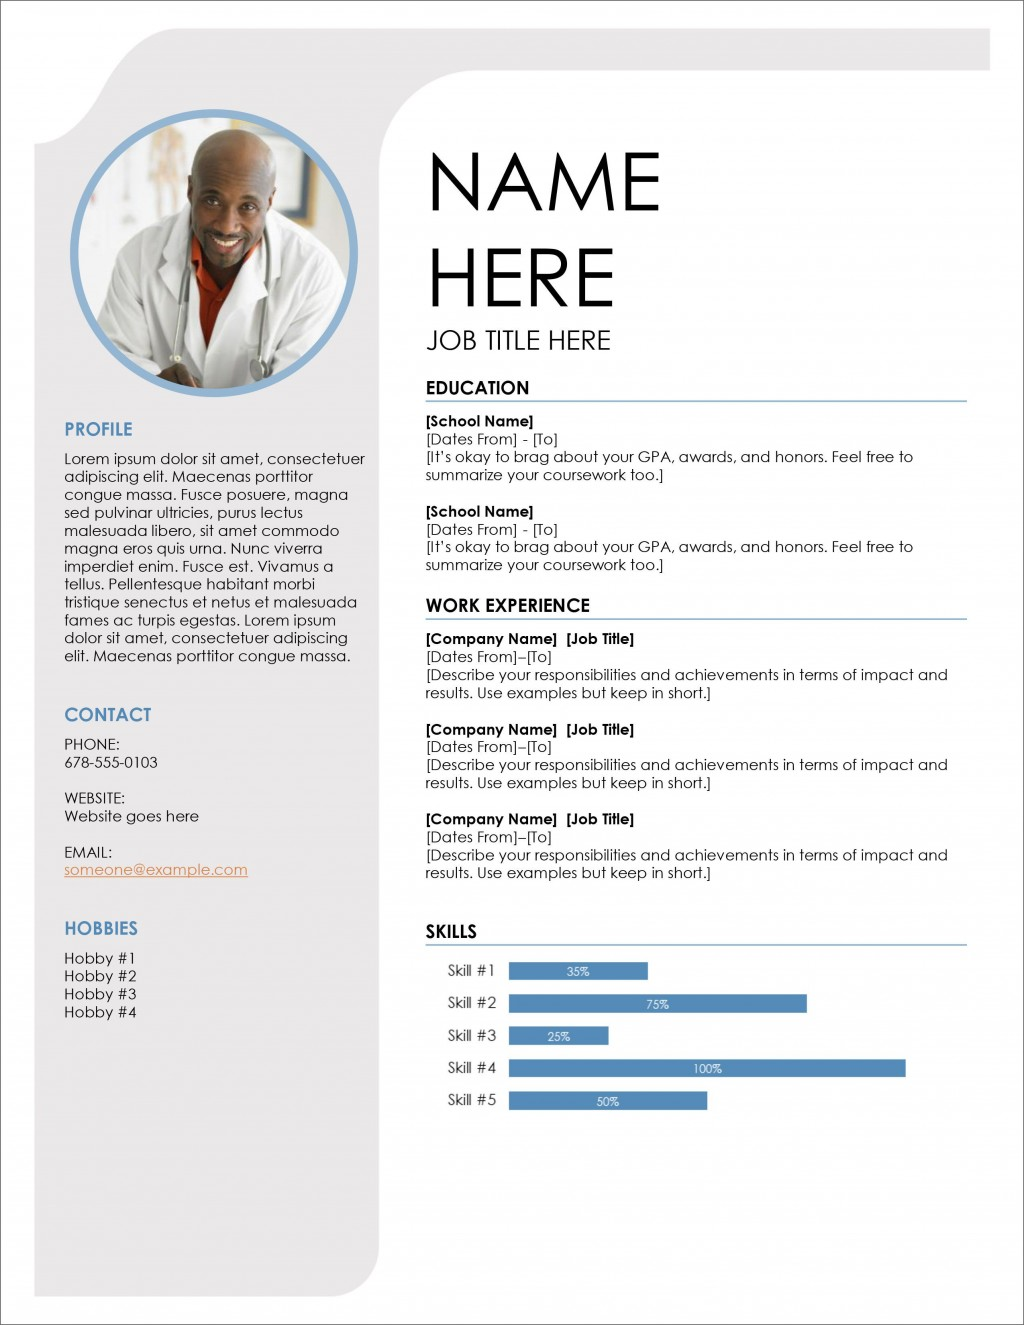 005 Remarkable Resume Template Free Word Doc Highest Clarity  Cv Download Document For StudentLarge